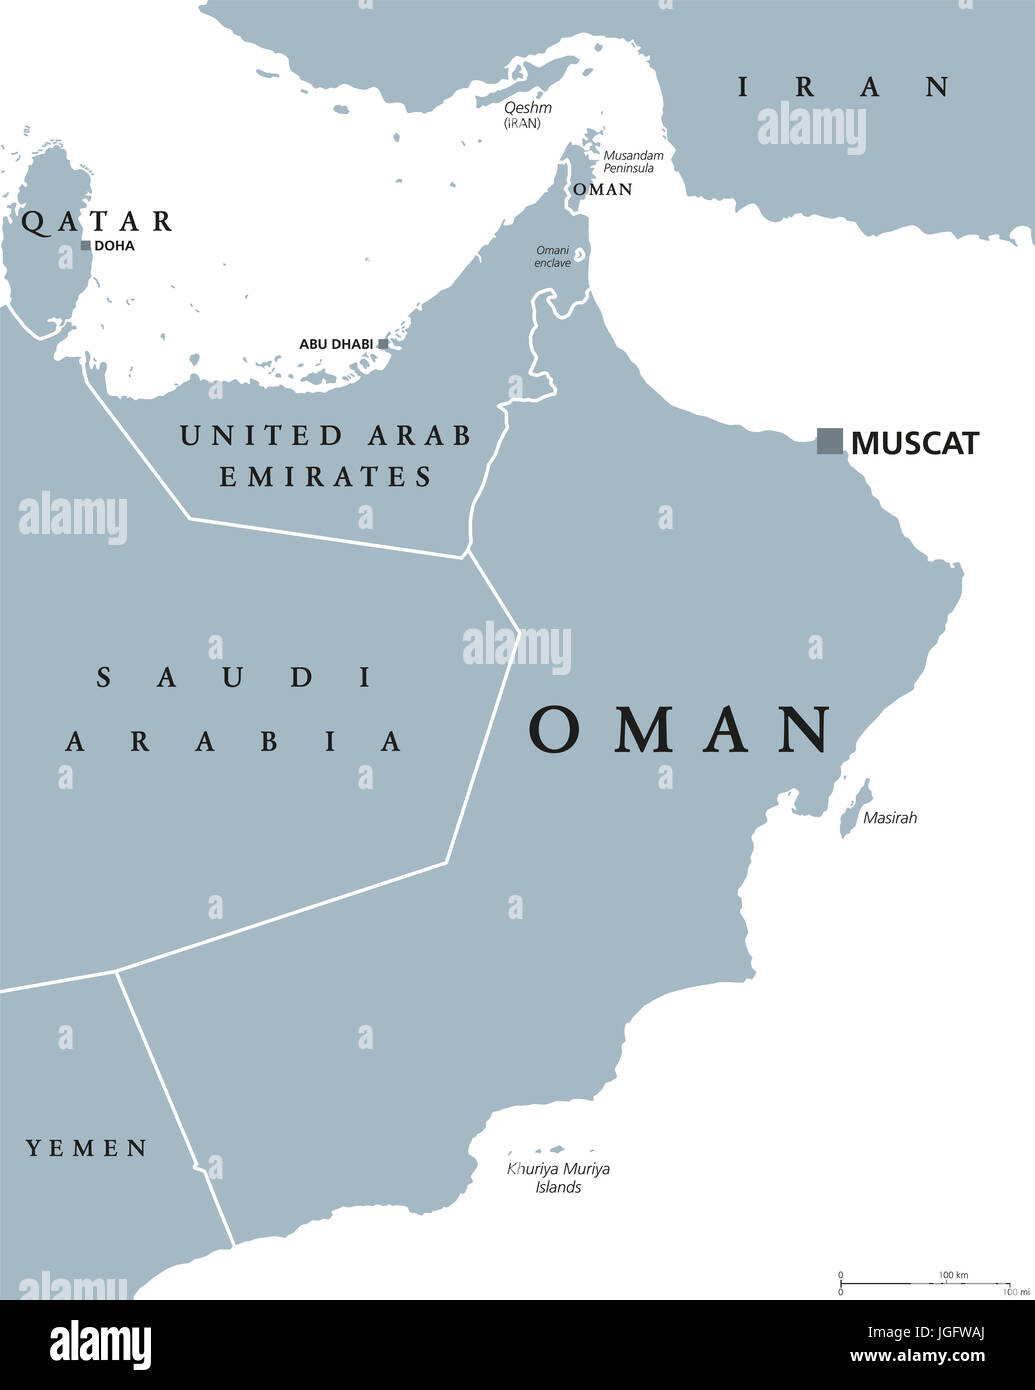 oman political map with capital muscat sultanate and arab country in western asia and middle east on the arabian peninsula gray illustration